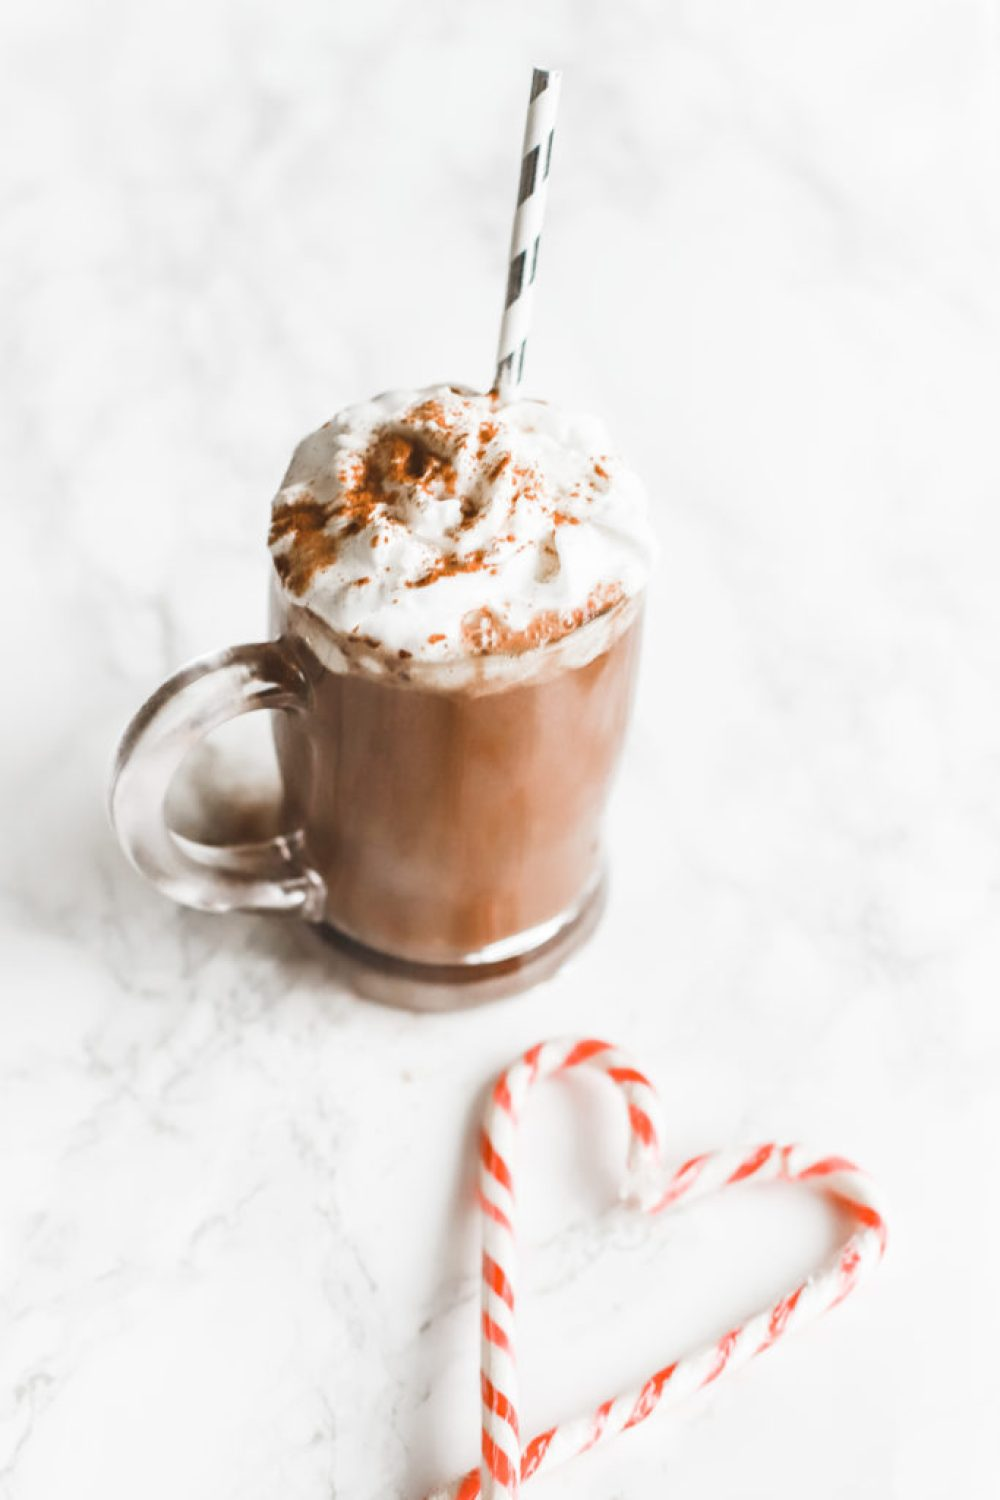 This homemade hot chocolate is deliciously decadent and creamy, using dairy free, sugar free ingredients to help with your weight loss goals. A holiday recipe the whole family will love and perfect for Christmas! Drinks | Drink Recipe | Dessert | Sugar Free | Dairy Free | Vegan | Keto | Ketogenic | Gluten-Free | Whole 30 | Paleo | Healthy | Christmas Recipe | Hot Cocoa | Chocolate | Crock Pot |